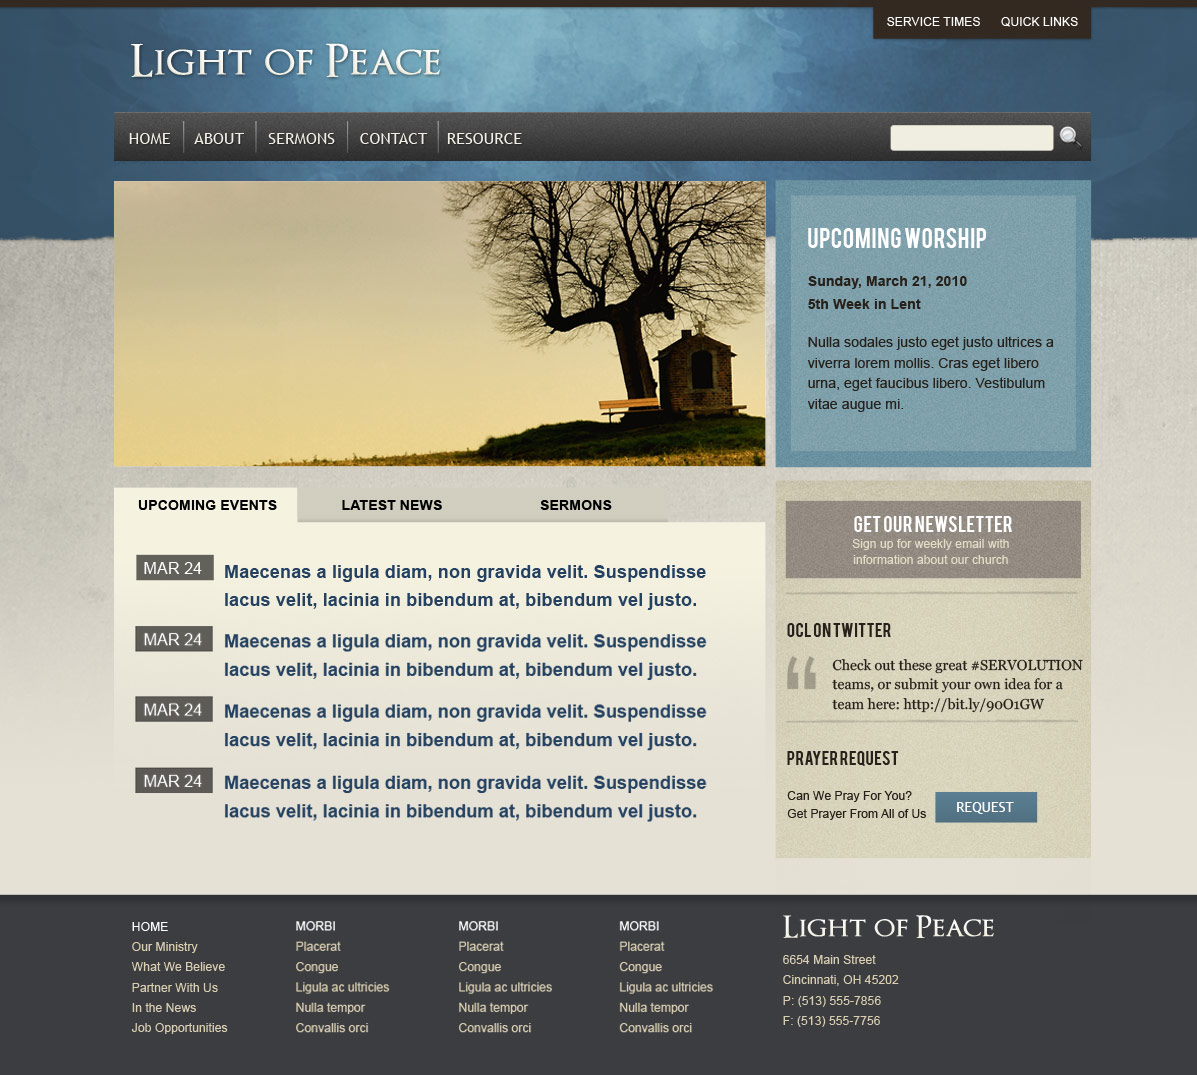 Light of Peace - Wordpress Template - This is the style 3 homepage template.